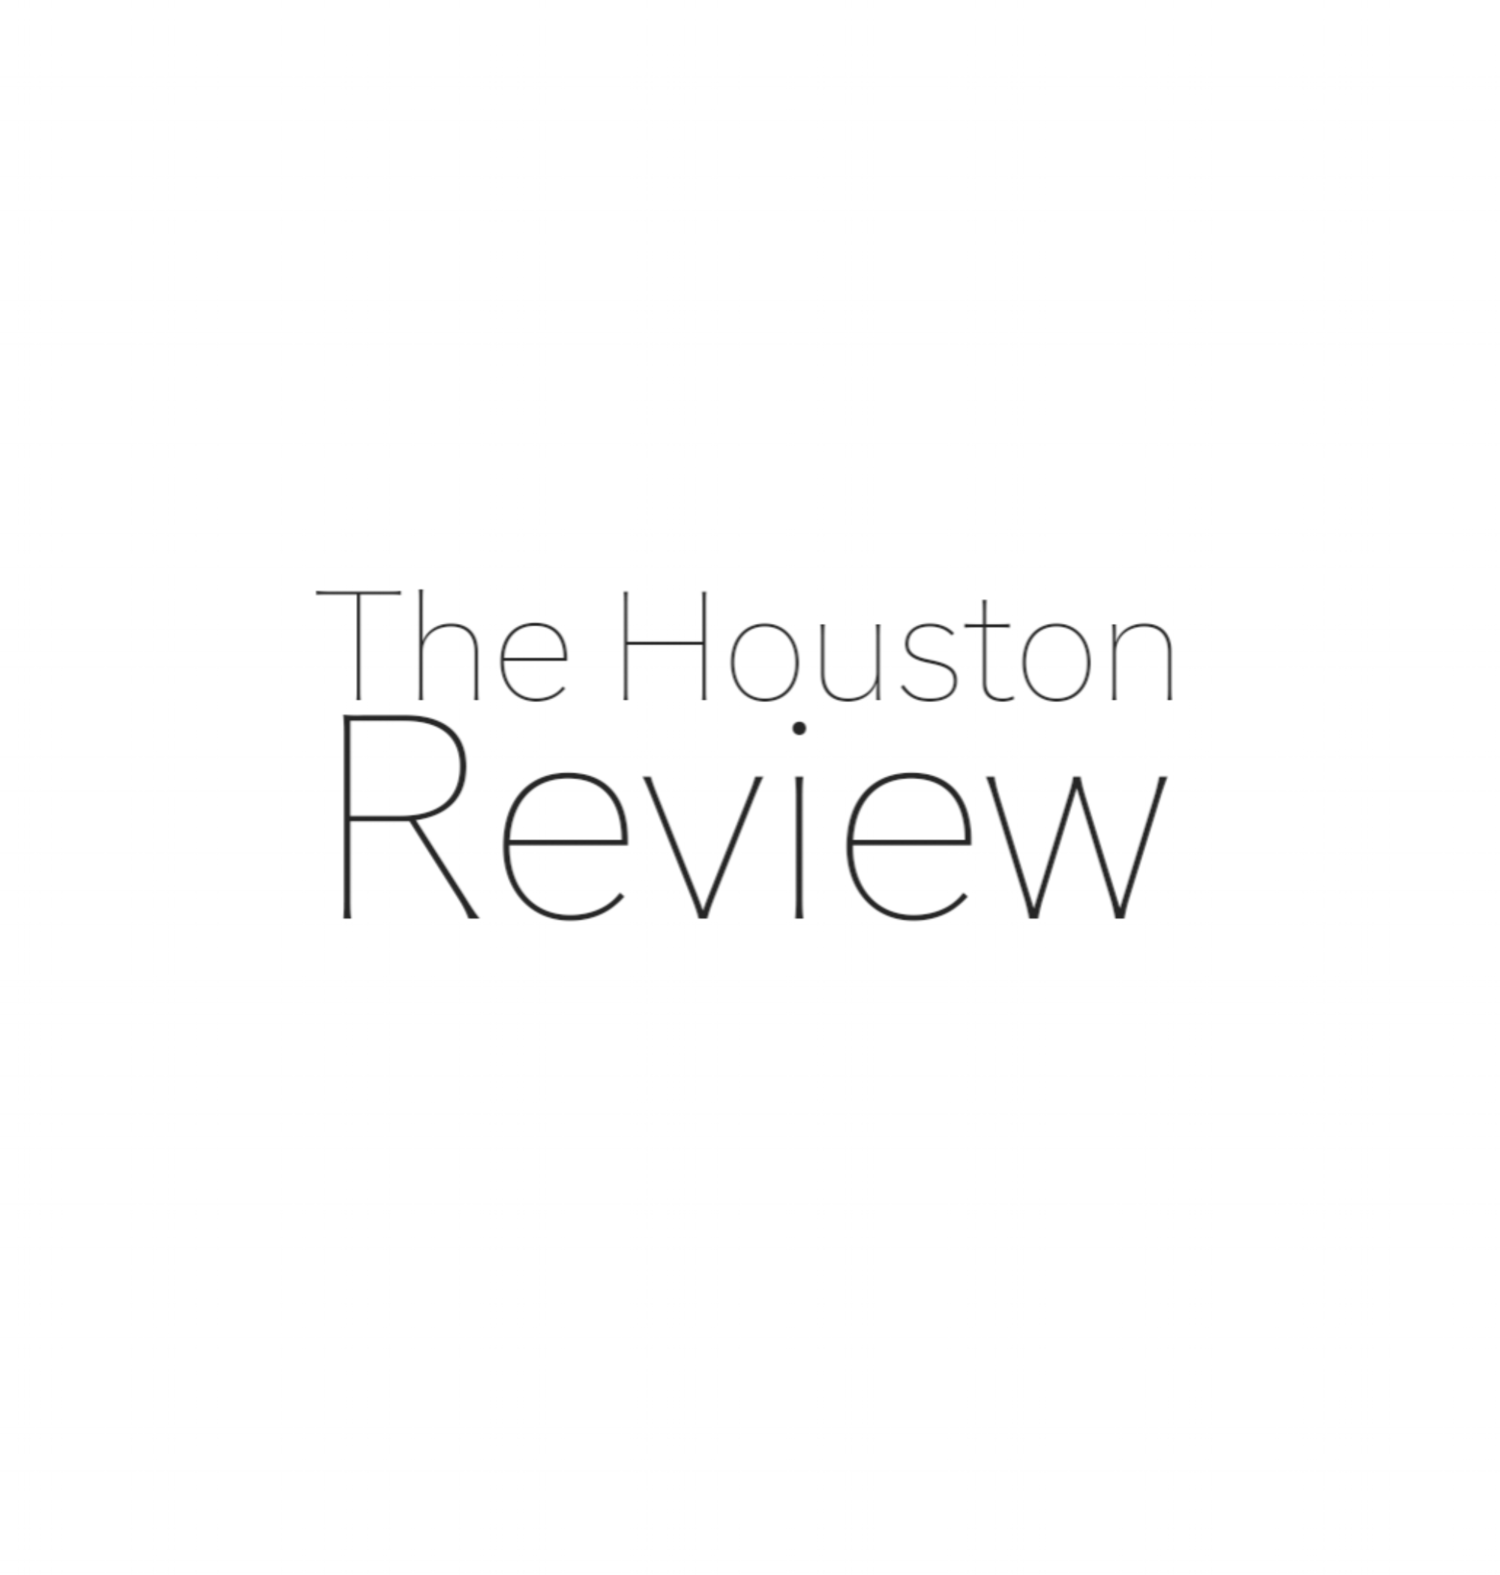 The Houston Review